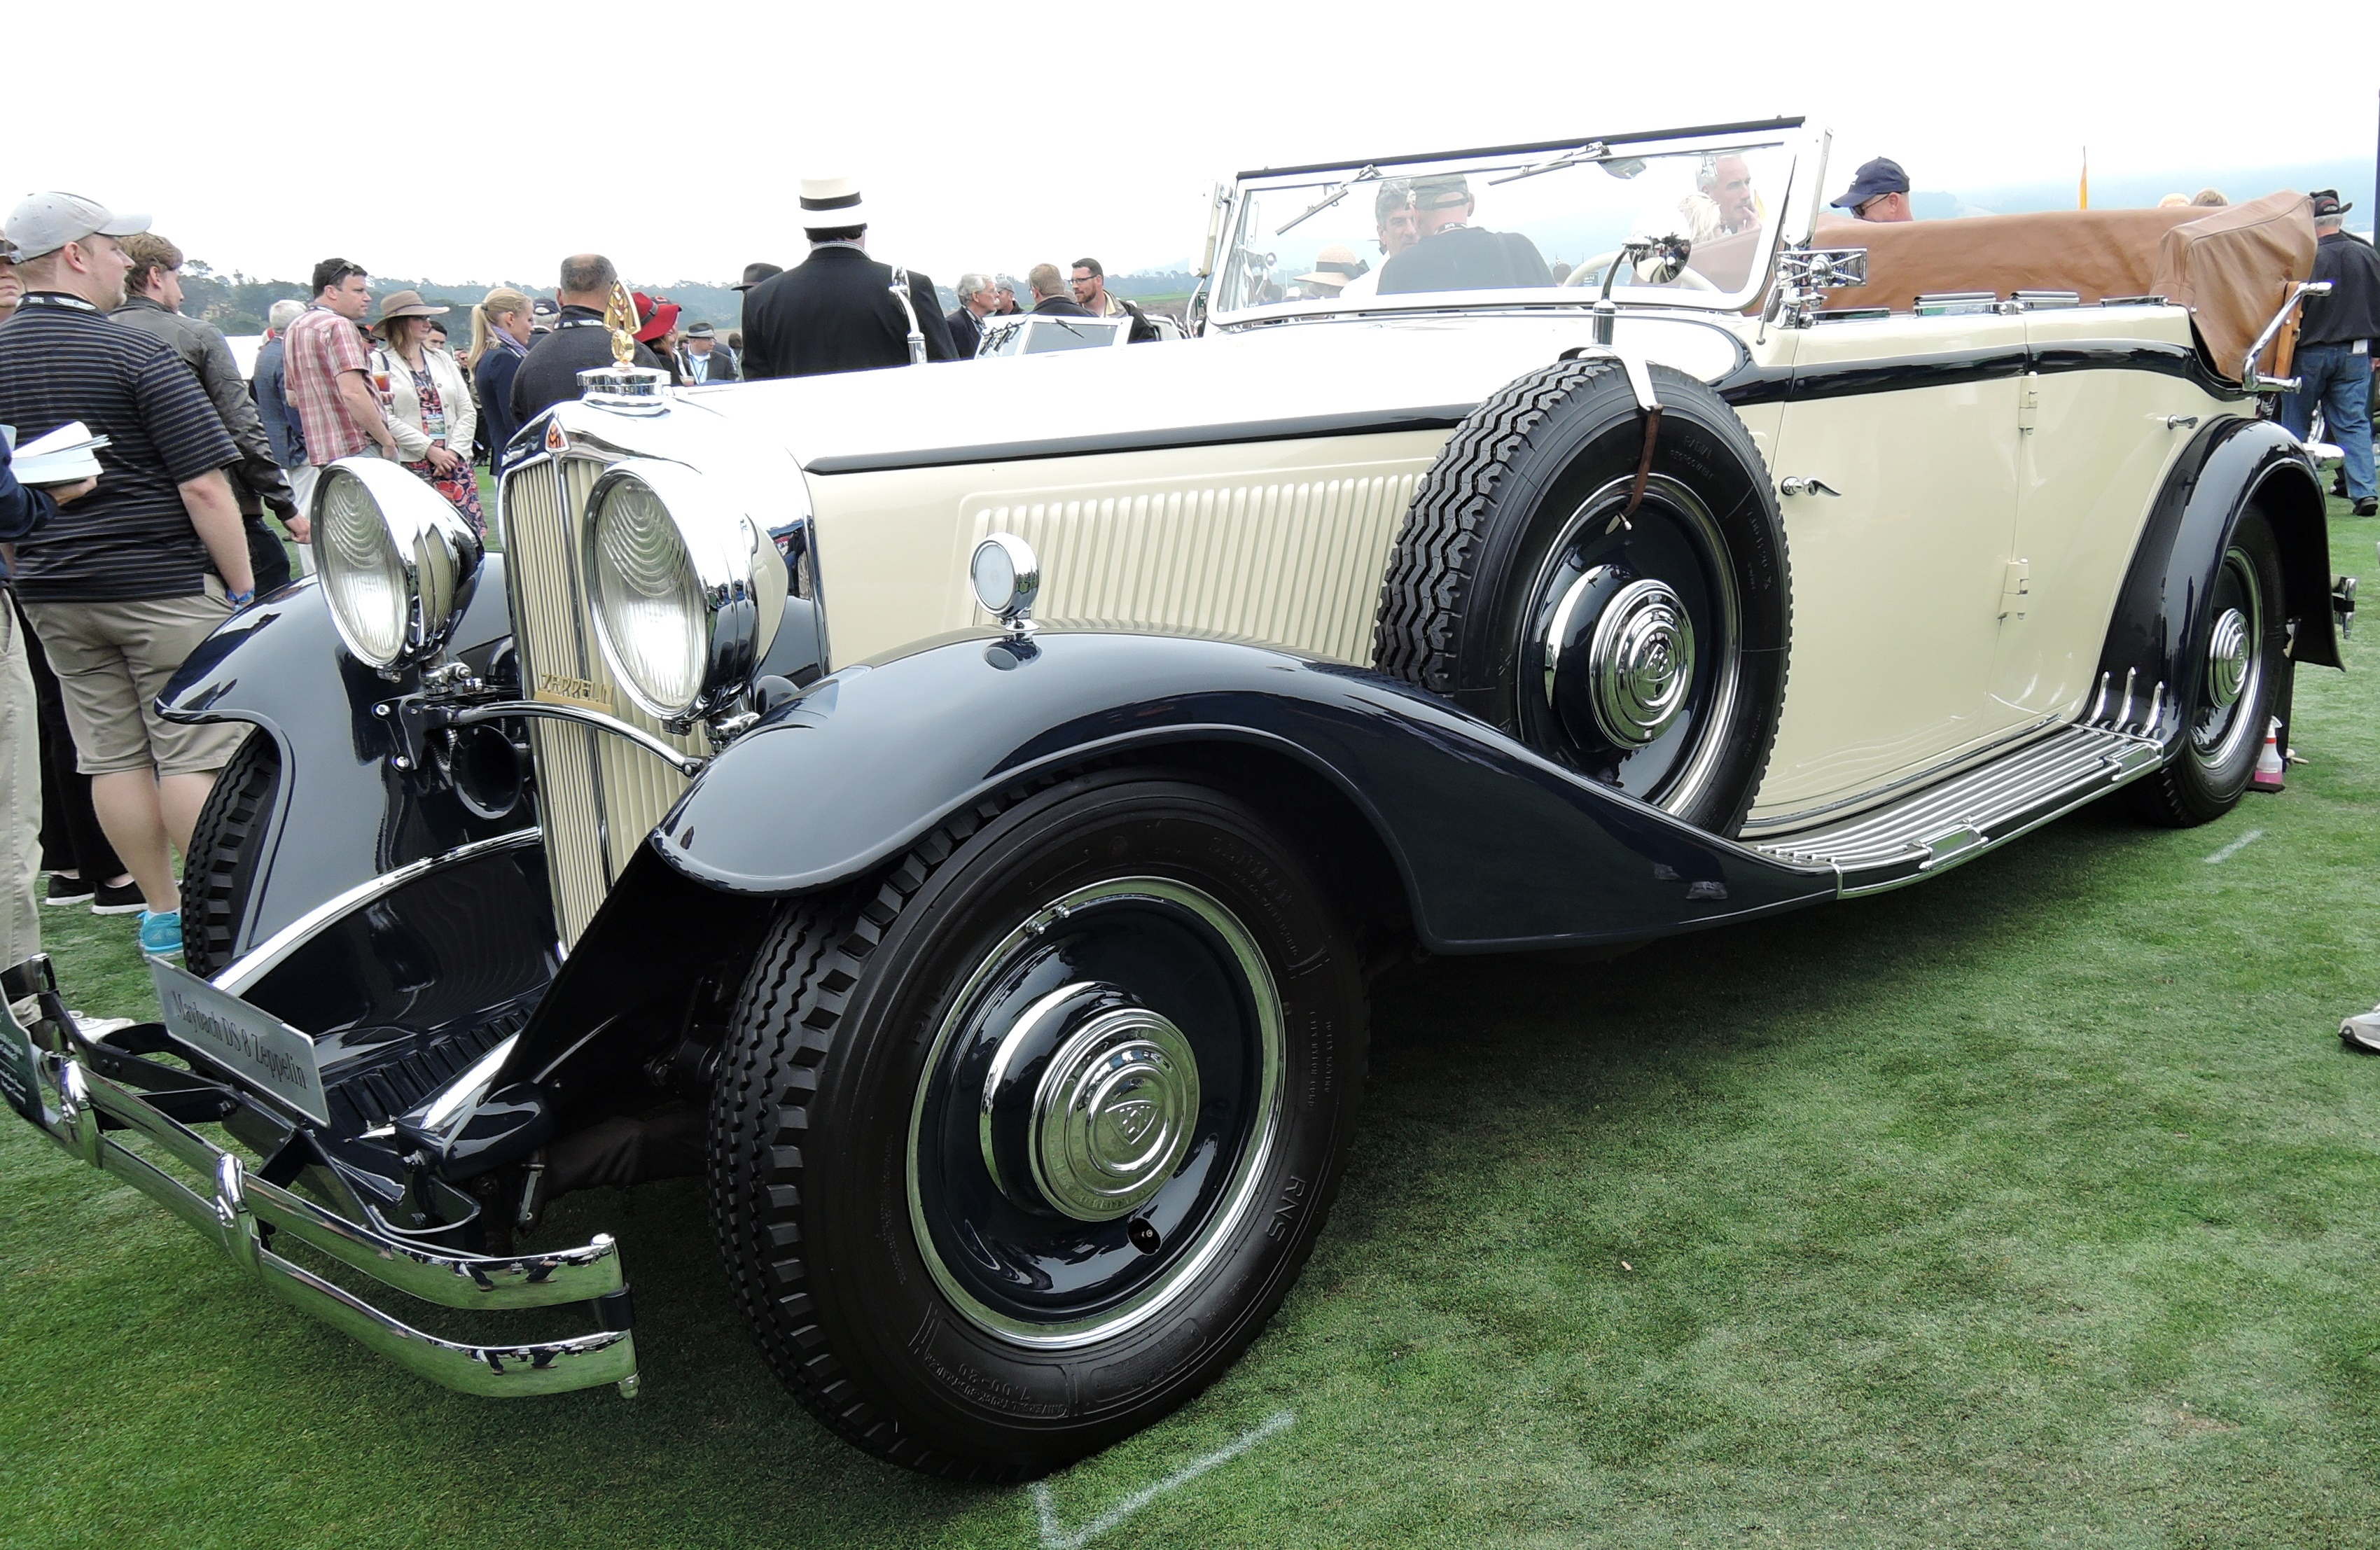 cream 1934 Maybach DS 8 Zeppelin Spohn Cabriolet F - Pebble Beach Concours d'Elegance 2016